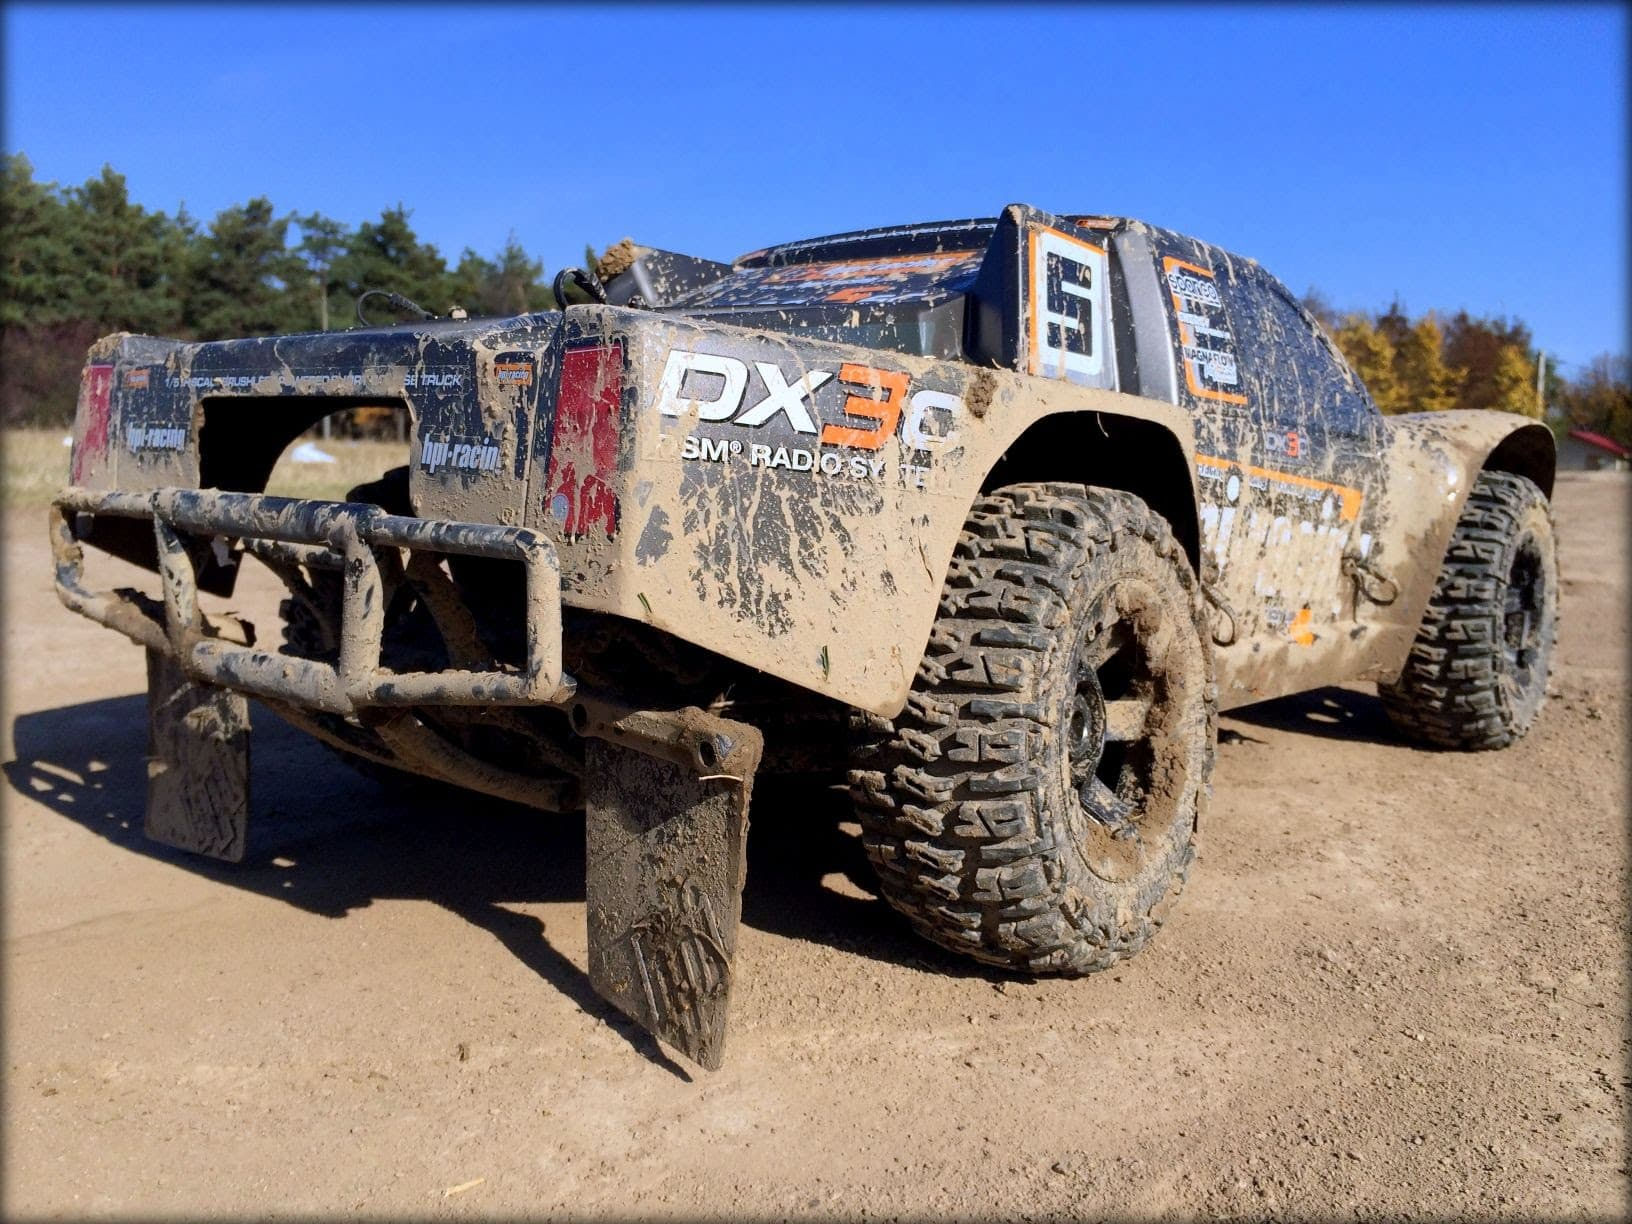 Monday, Muddy Monday – A HPI Super 5SC getting dirty. [Video]